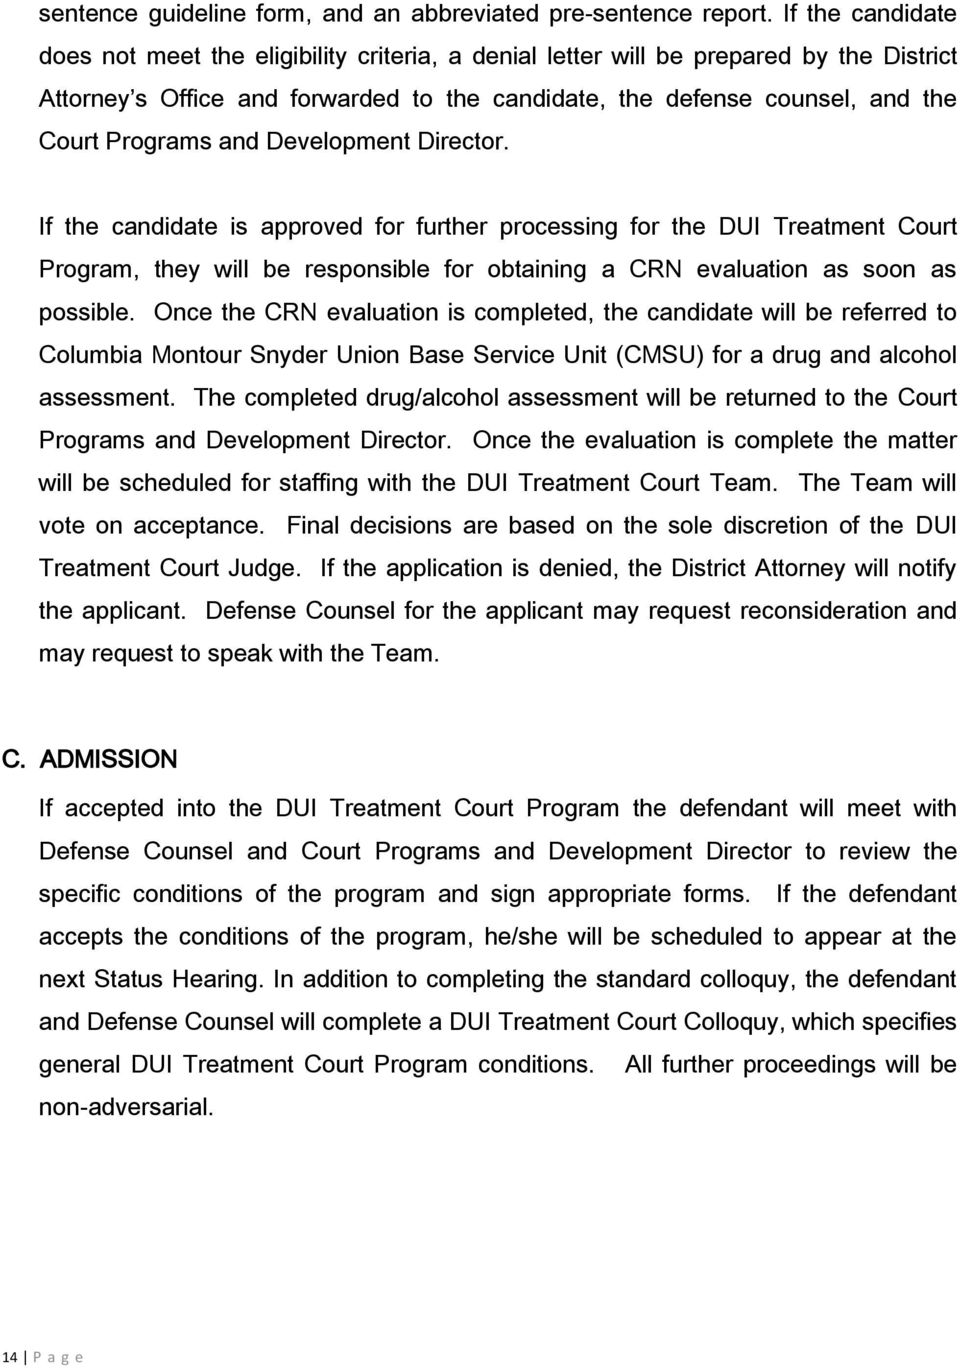 and Development Director. If the candidate is approved for further processing for the DUI Treatment Court Program, they will be responsible for obtaining a CRN evaluation as soon as possible.